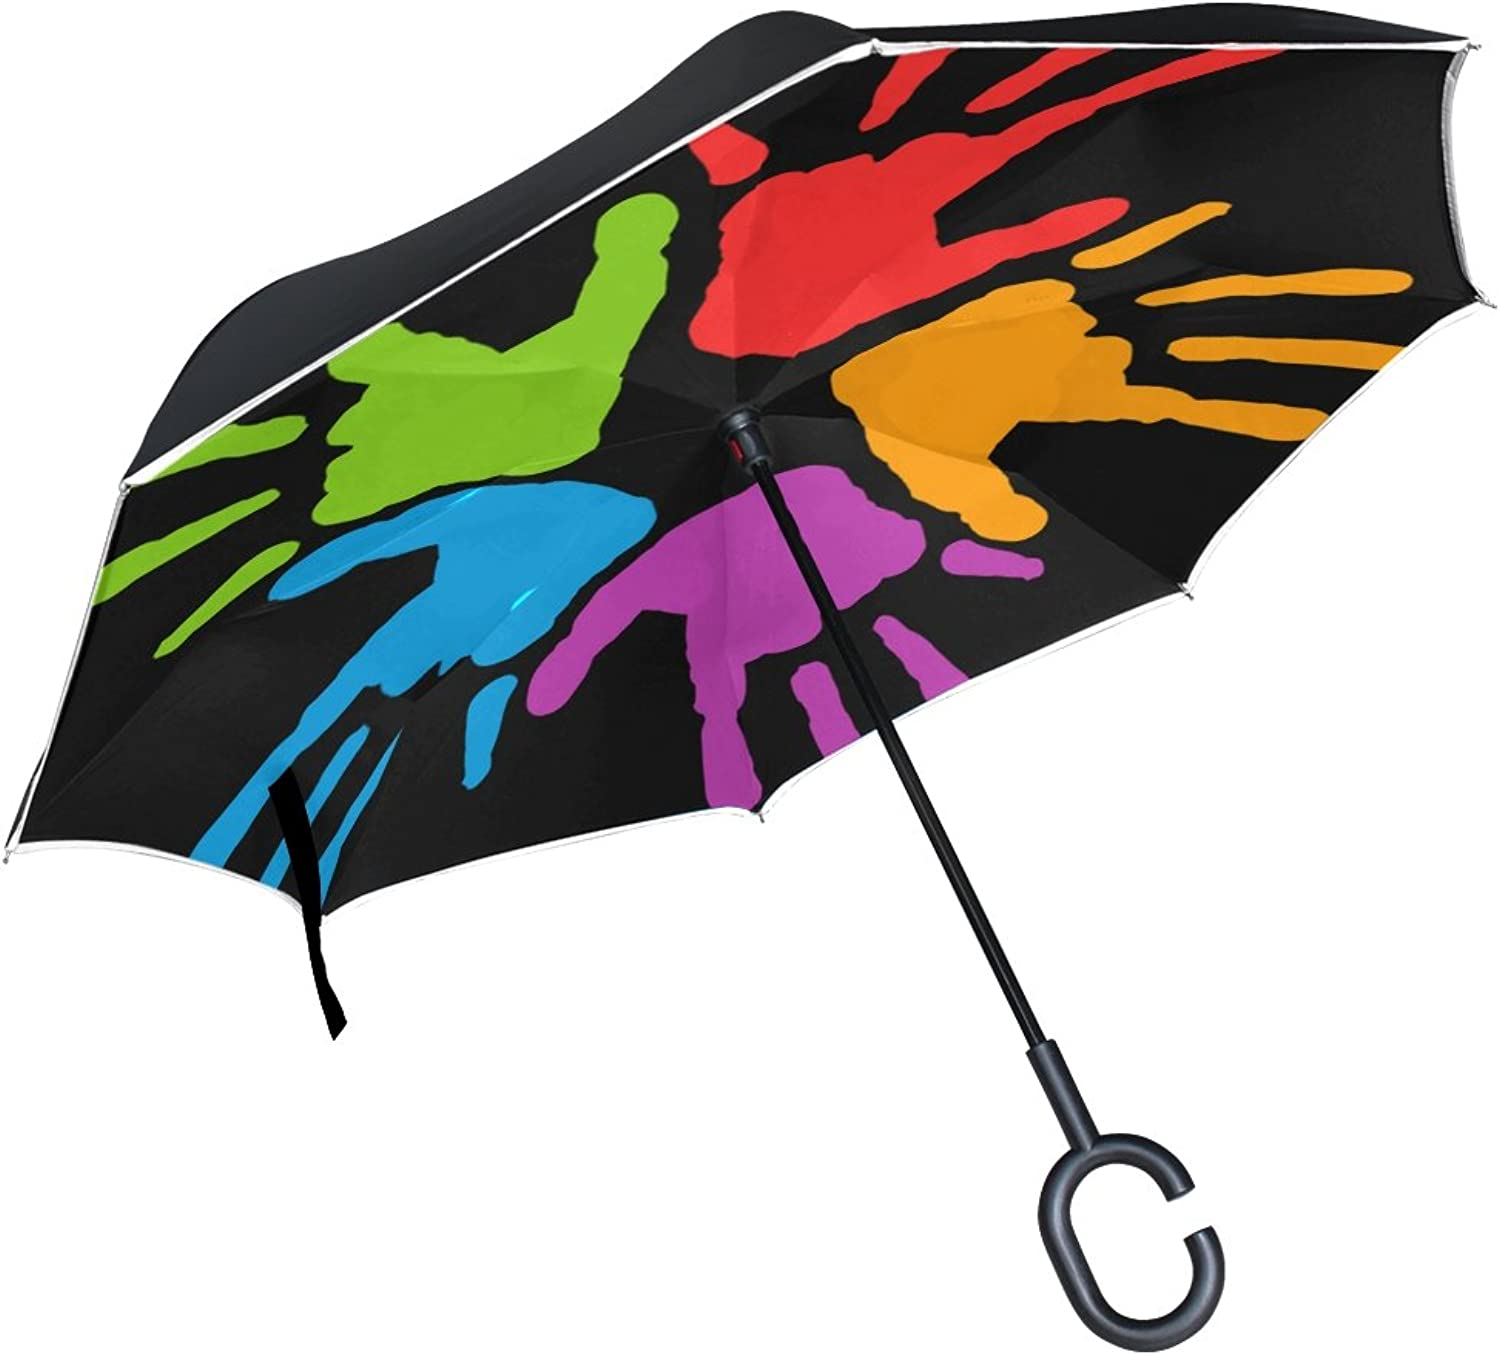 Double Layer Ingreened Common Commune Diversity Hand Hands K Mains Mani Umbrellas Reverse Folding Umbrella Windproof Uv Predection Big Straight Umbrella for Car Rain Outdoor with CShaped Handle